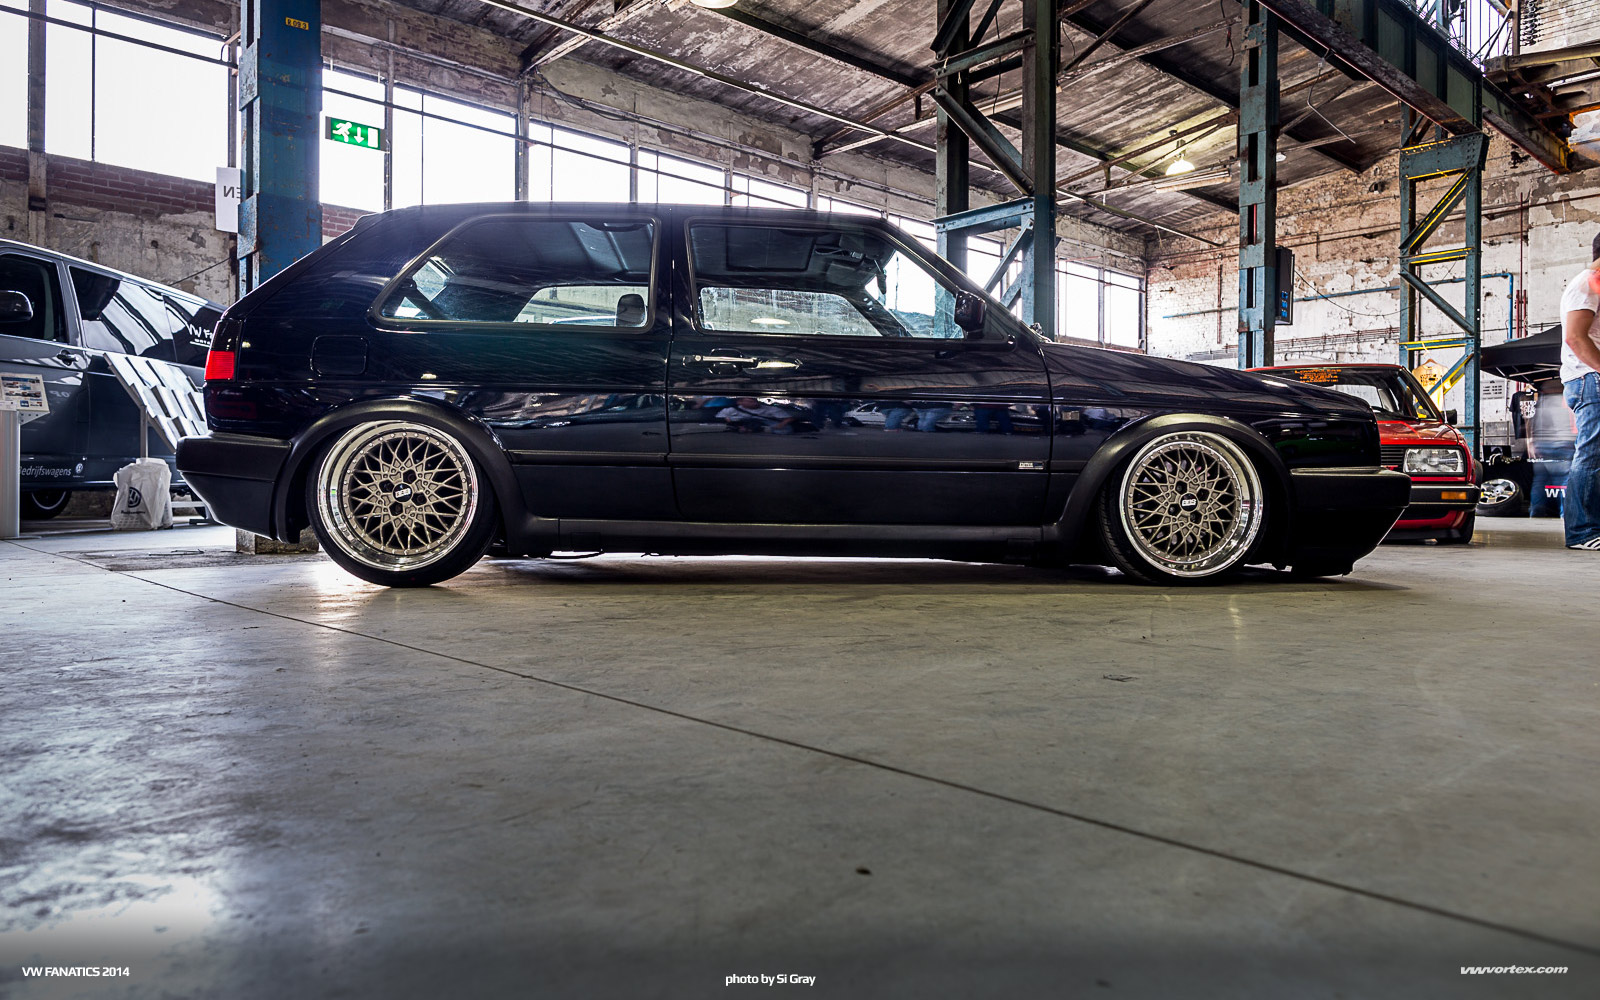 VWFanatics-2014-Si-Gray-381